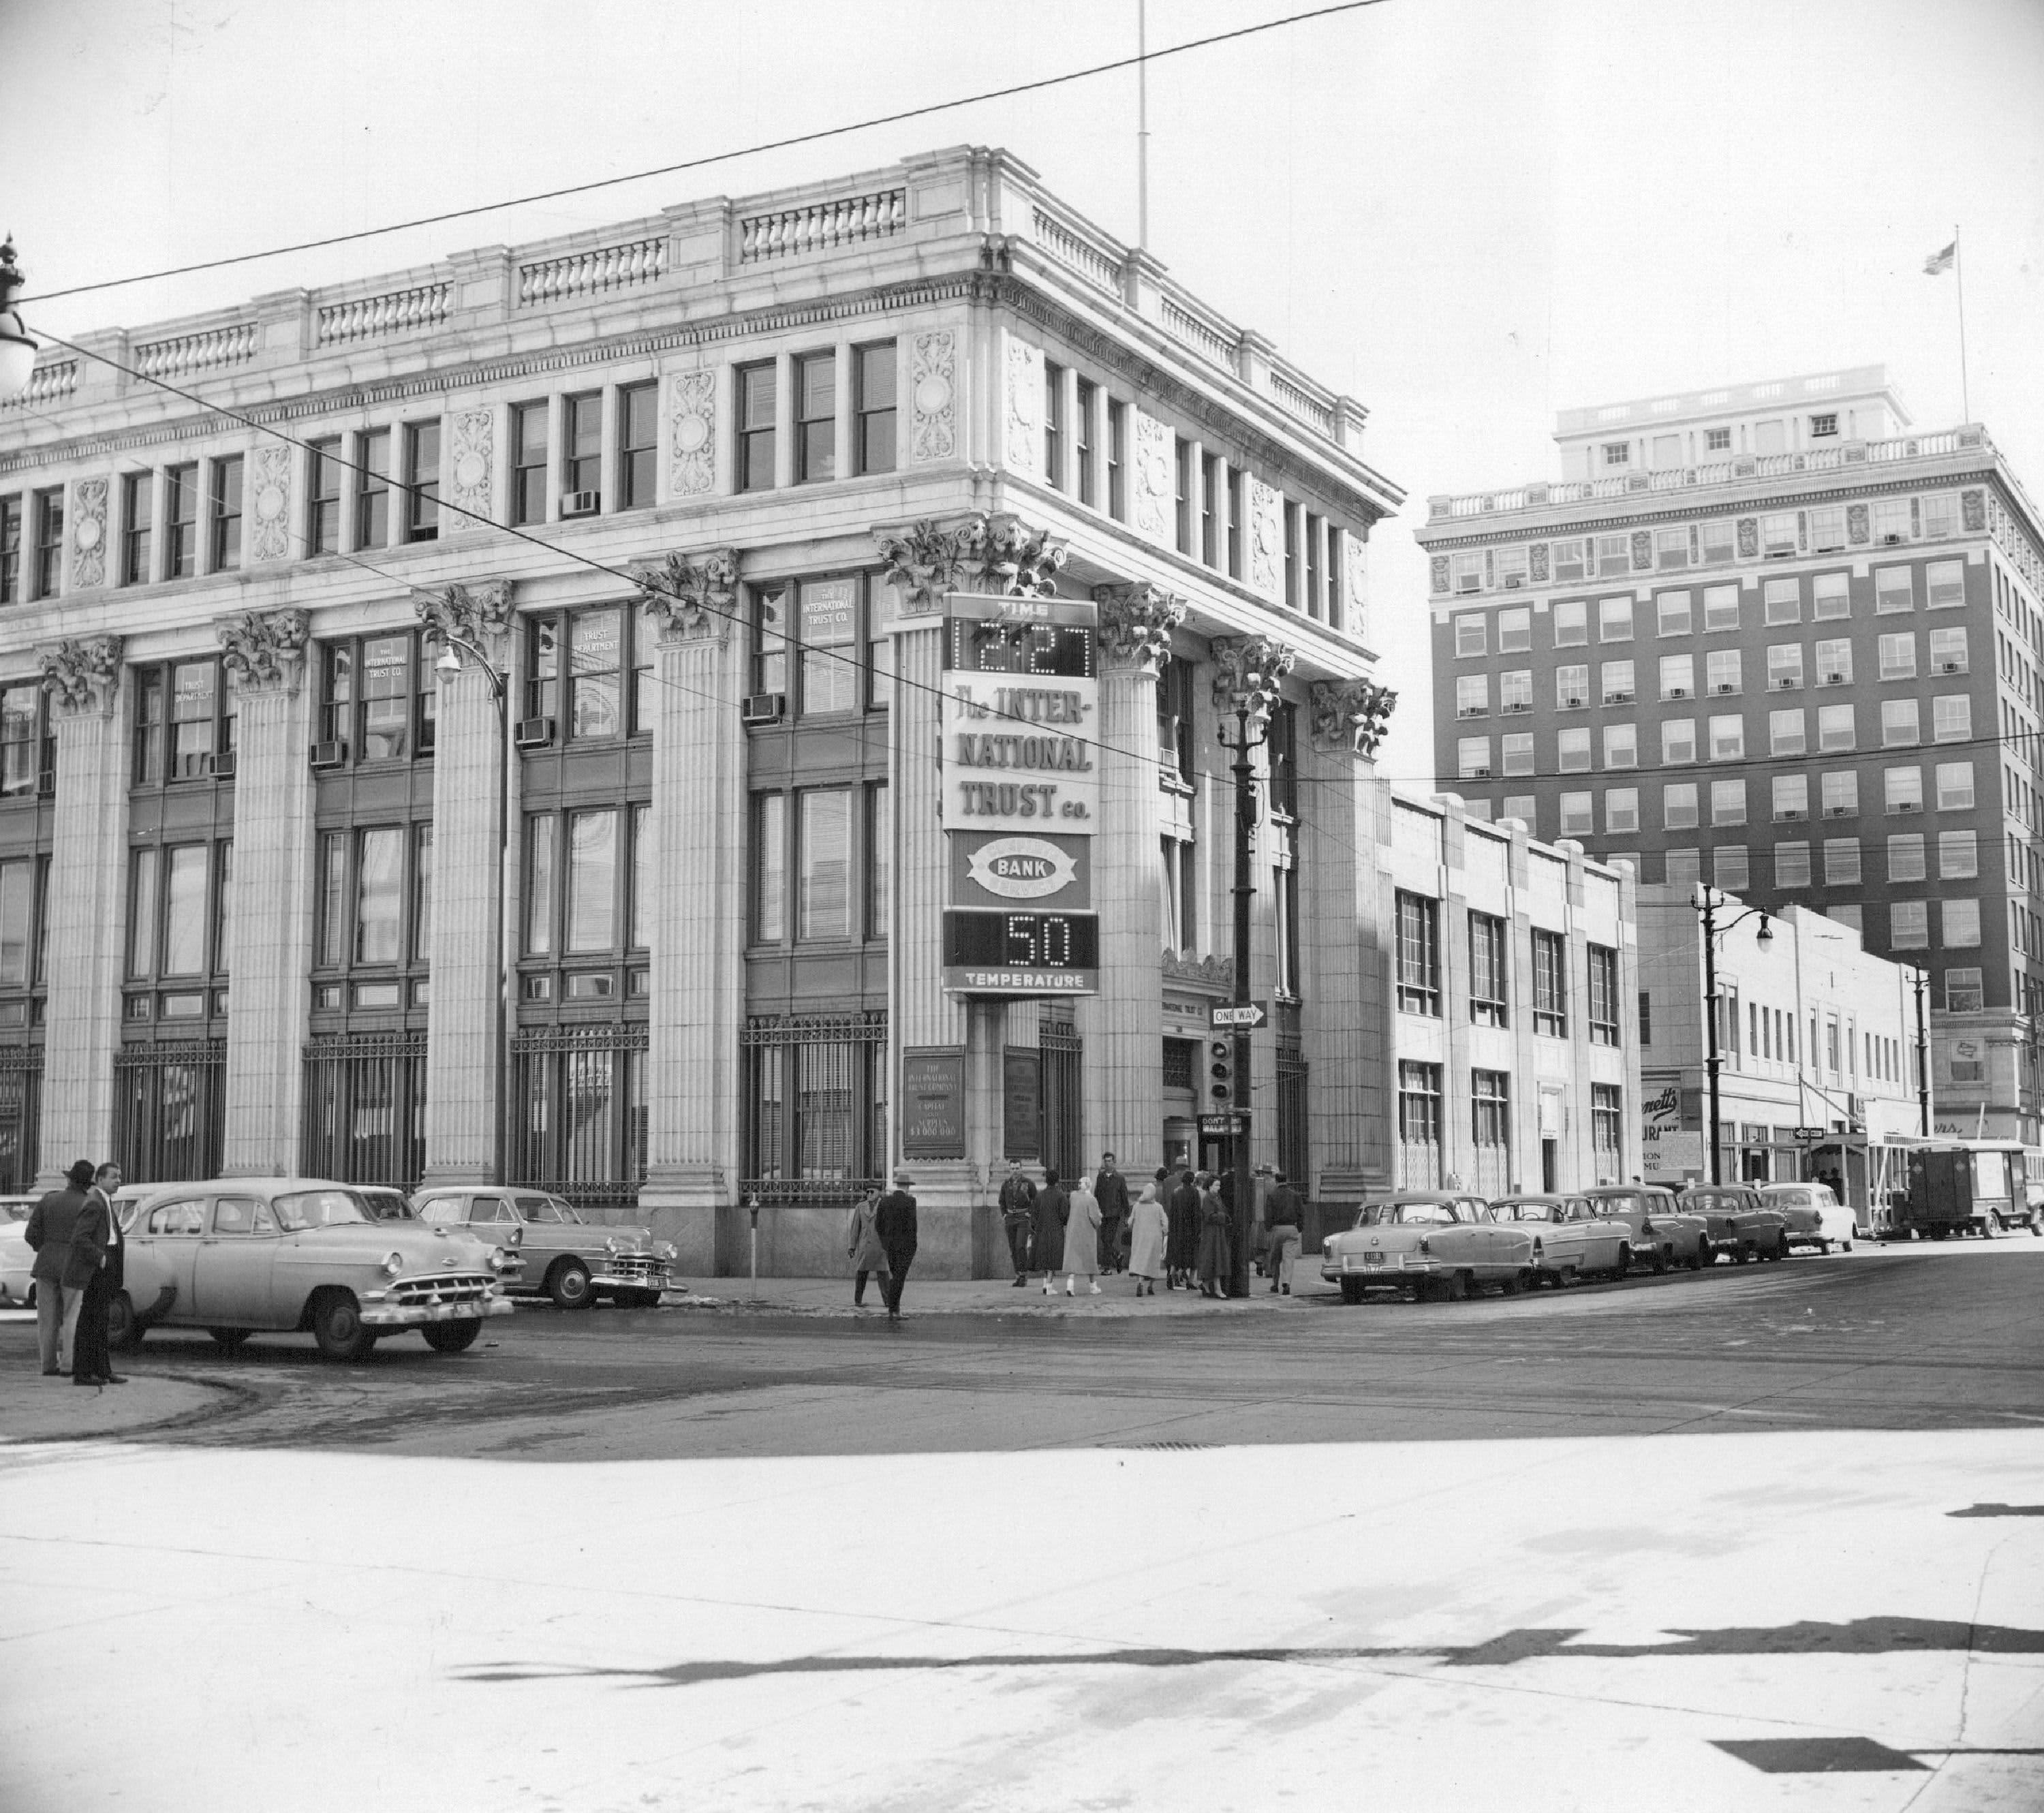 International Trust Bank, Denver 1956